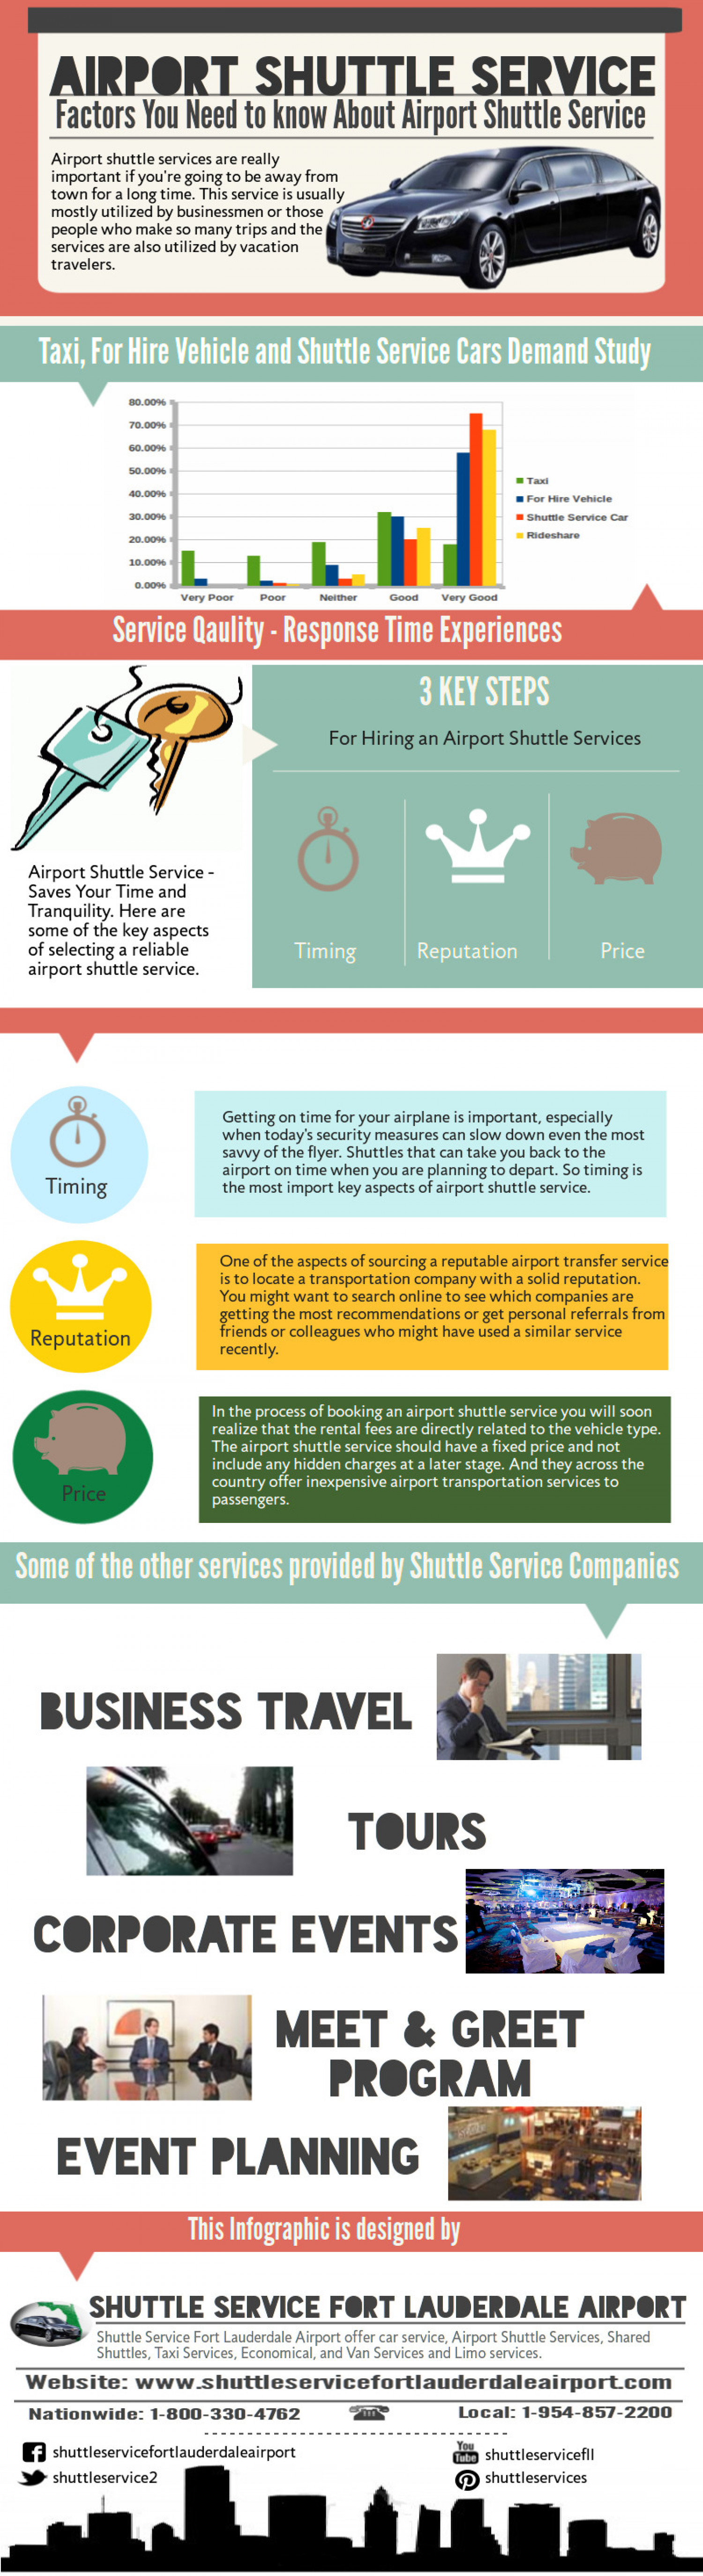 Factors You Need to know About Airport Shuttle Service Infographic